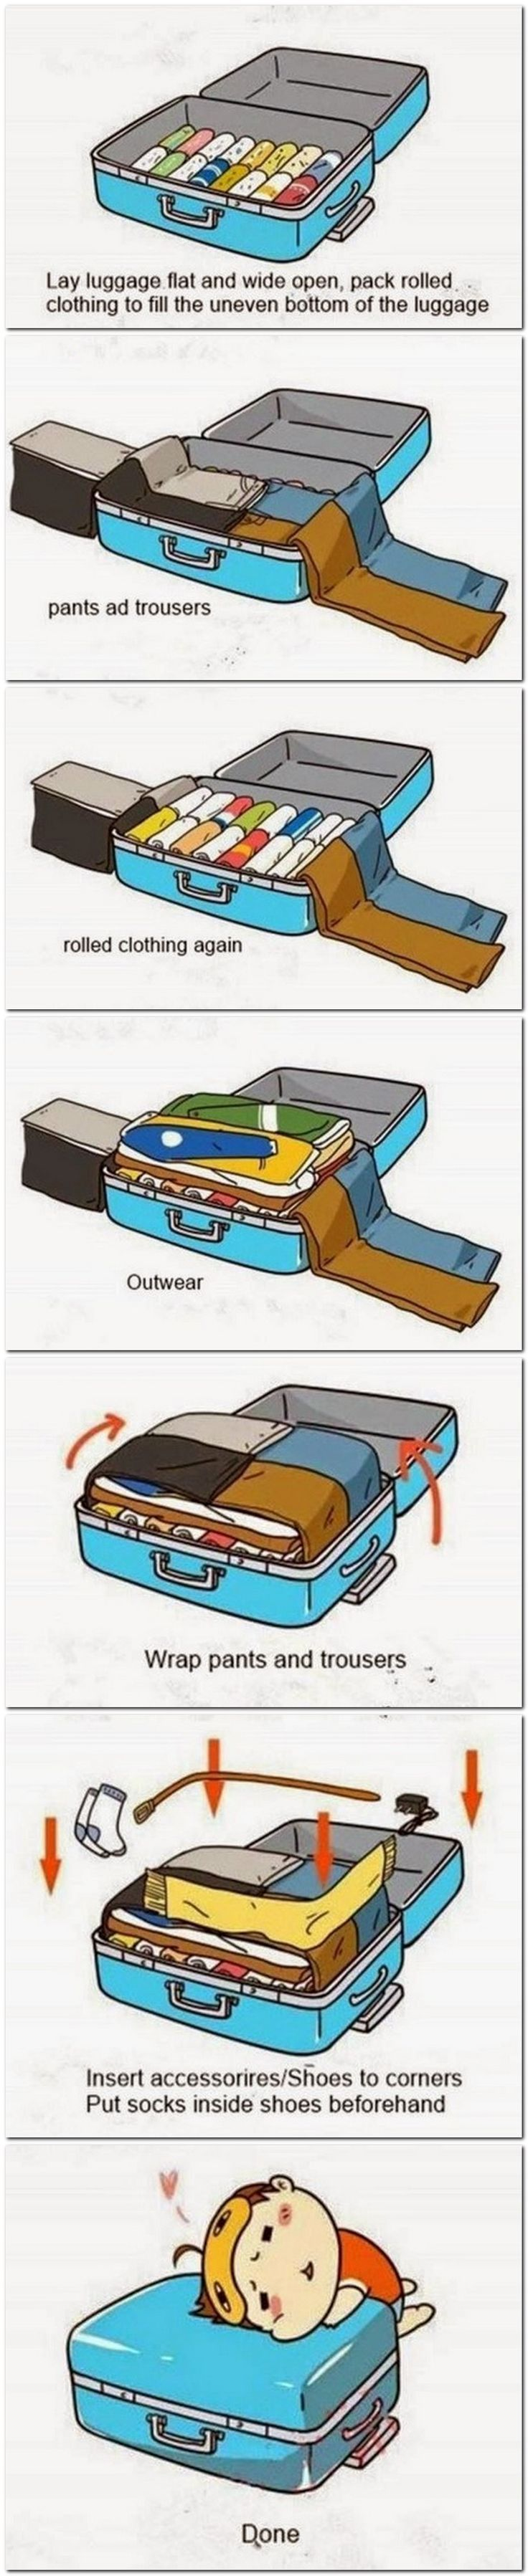 Packing tips, to make fitting everything in your suitcase a breeze! #travel #lug...